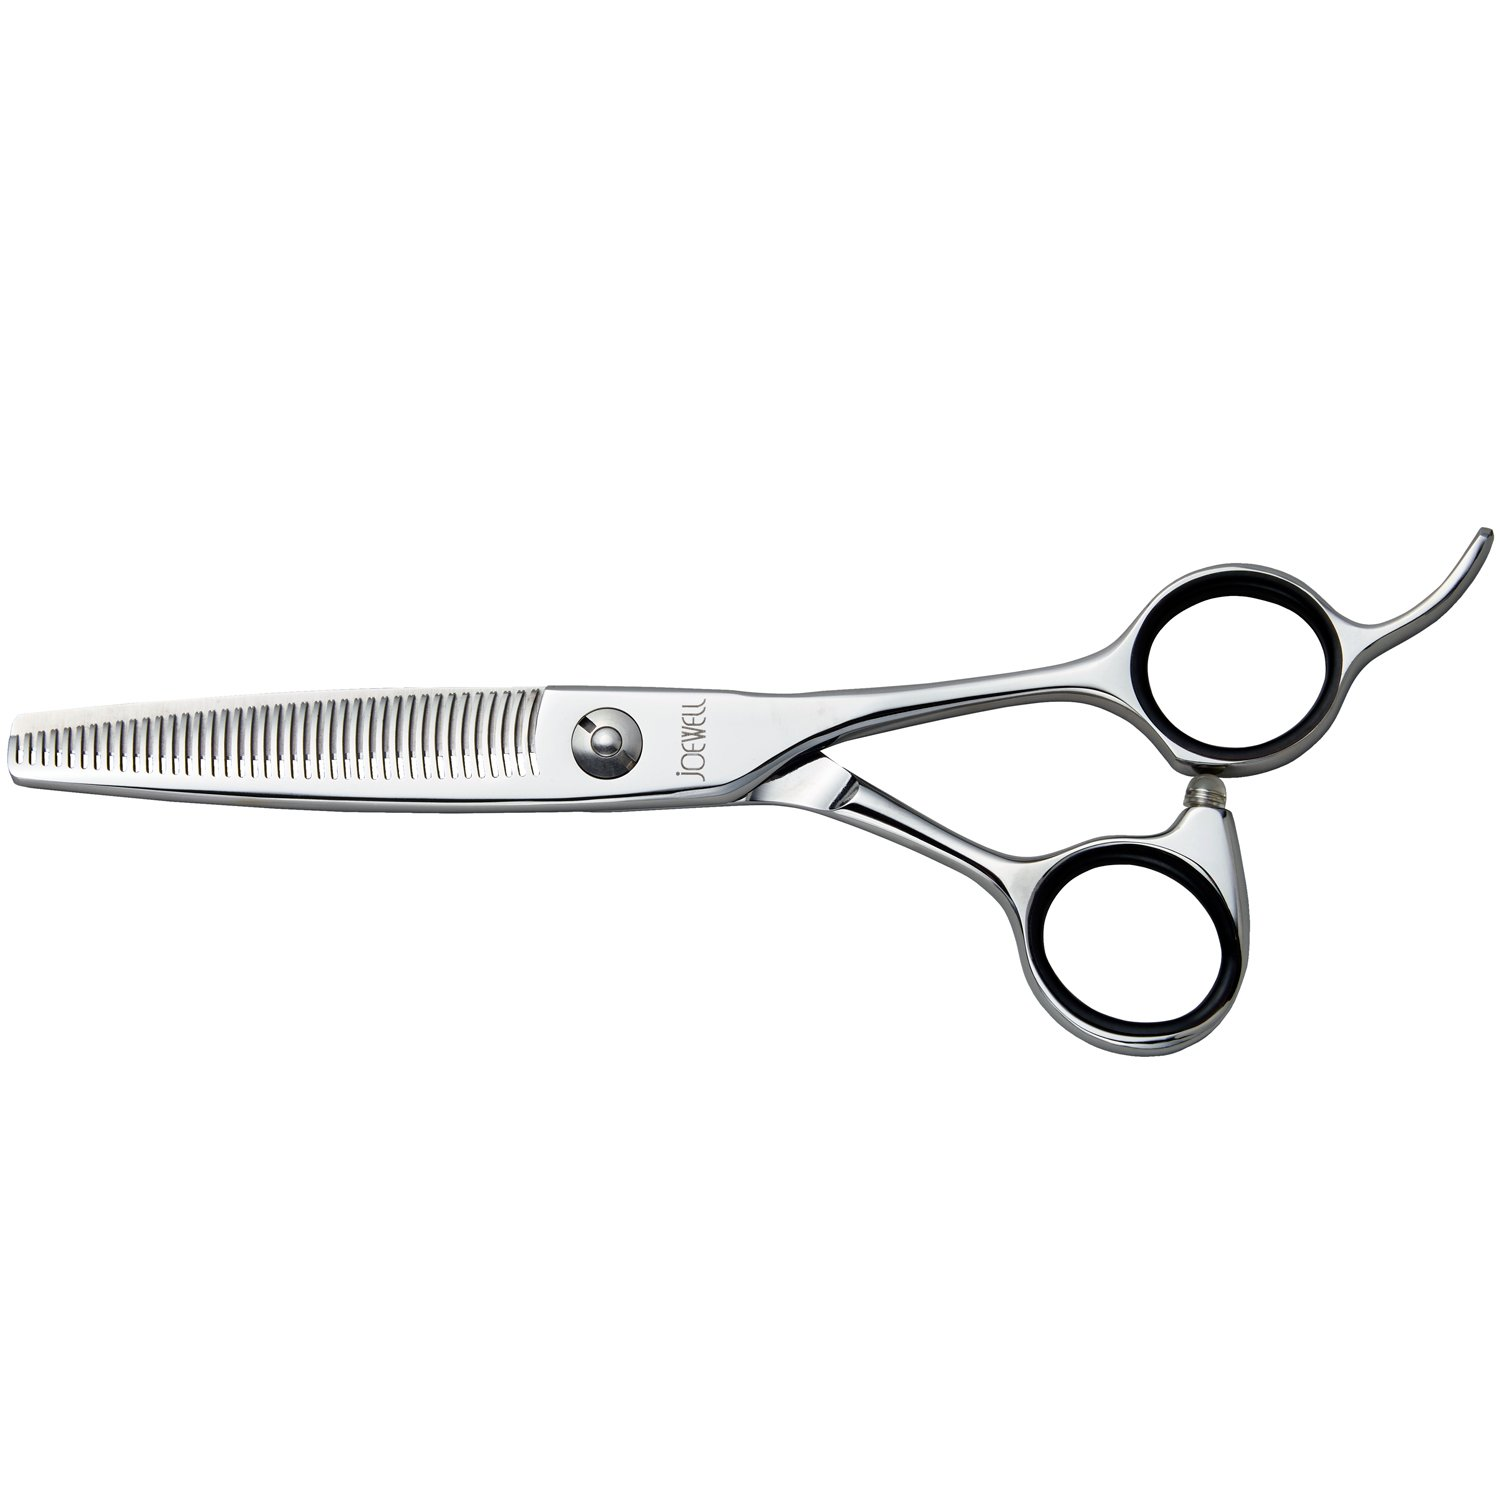 Joewell S2 Shear, Thinner & Texturizer Kit (5.0'') by Joewell (Image #2)